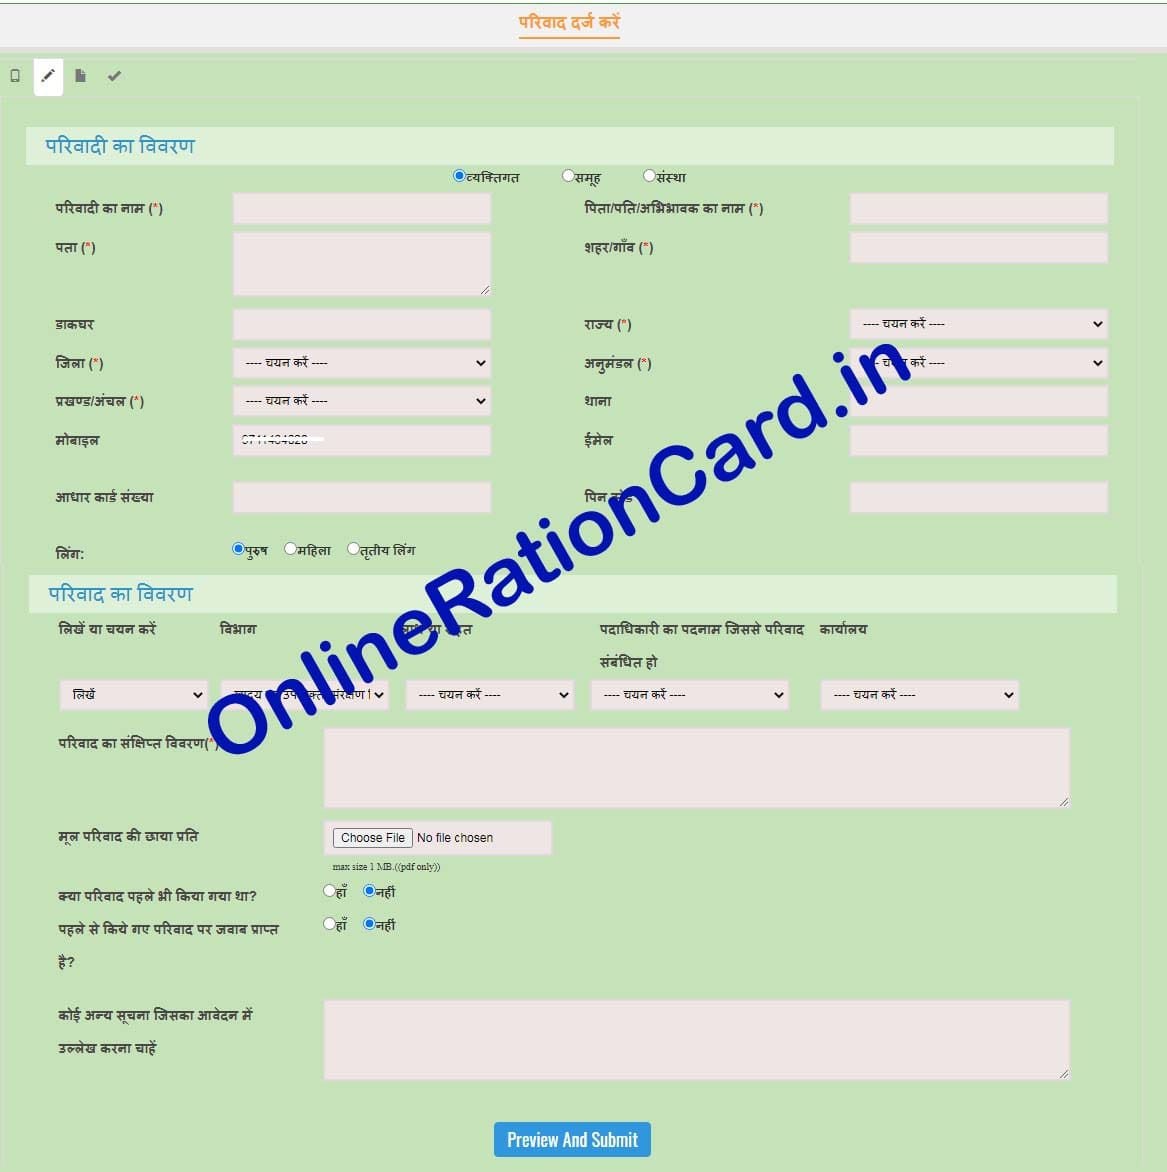 Bihar Ration Card Complaint Naya PArivaad 1